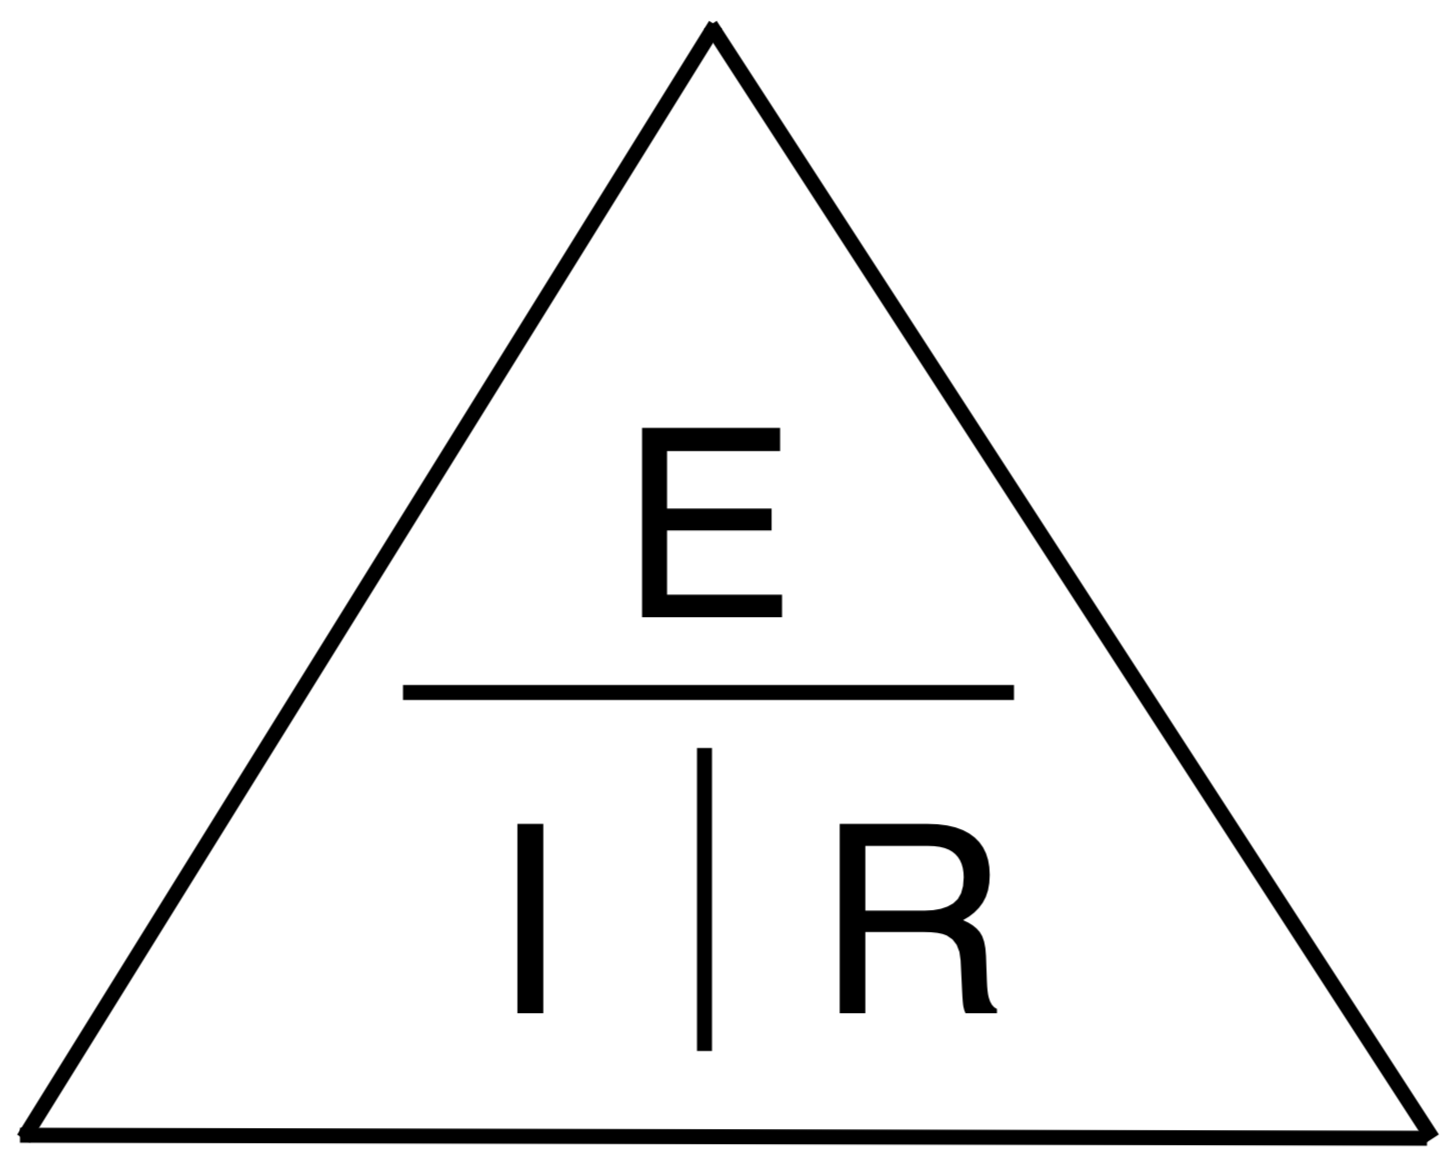 Ohm's Law triangle visualizing the formula to find voltage, current, and resistance